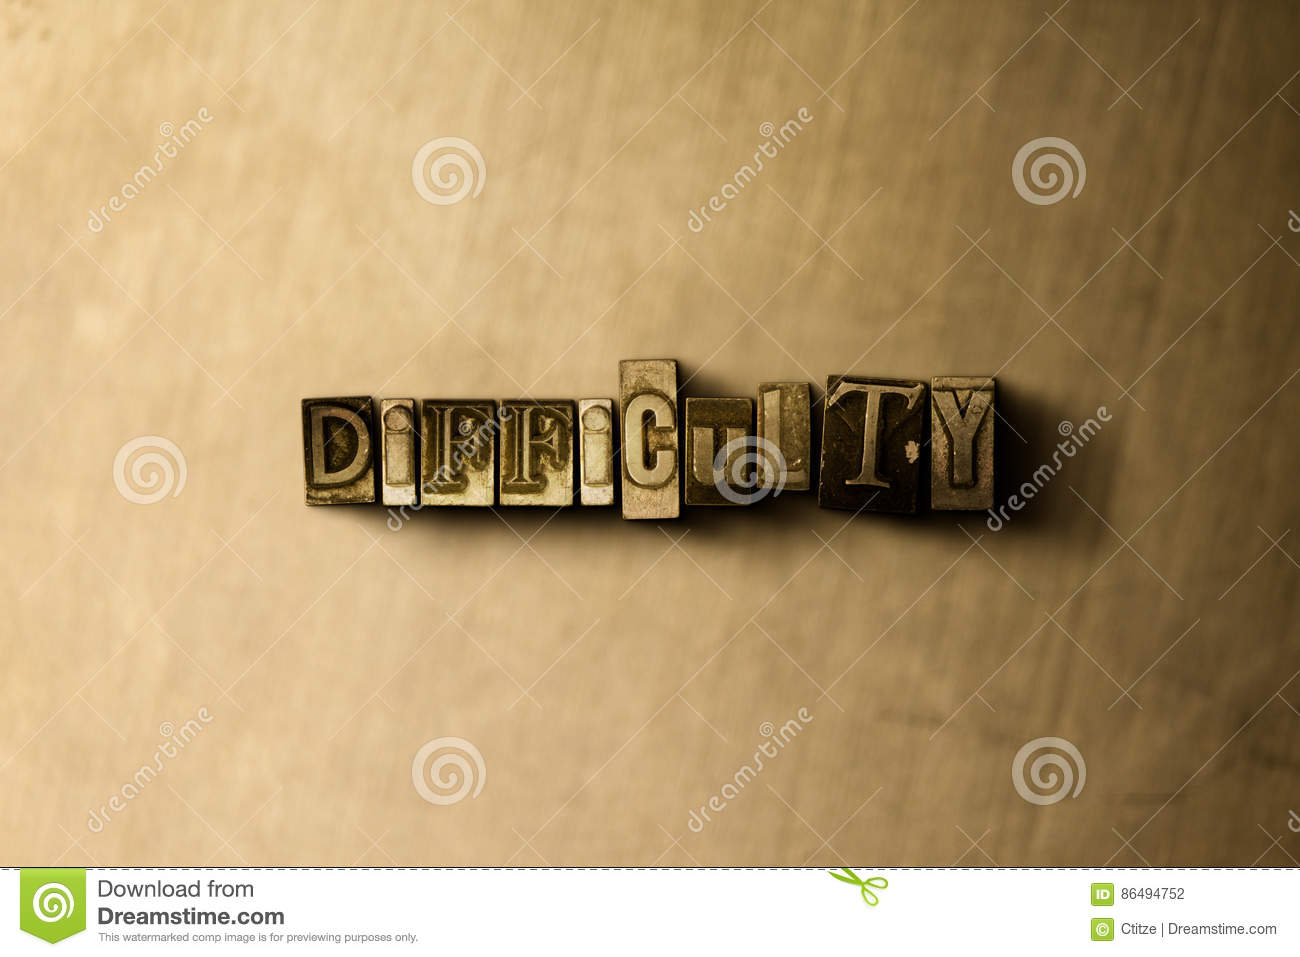 DIFFICULTY - close-up of grungy vintage typeset word on metal backdrop